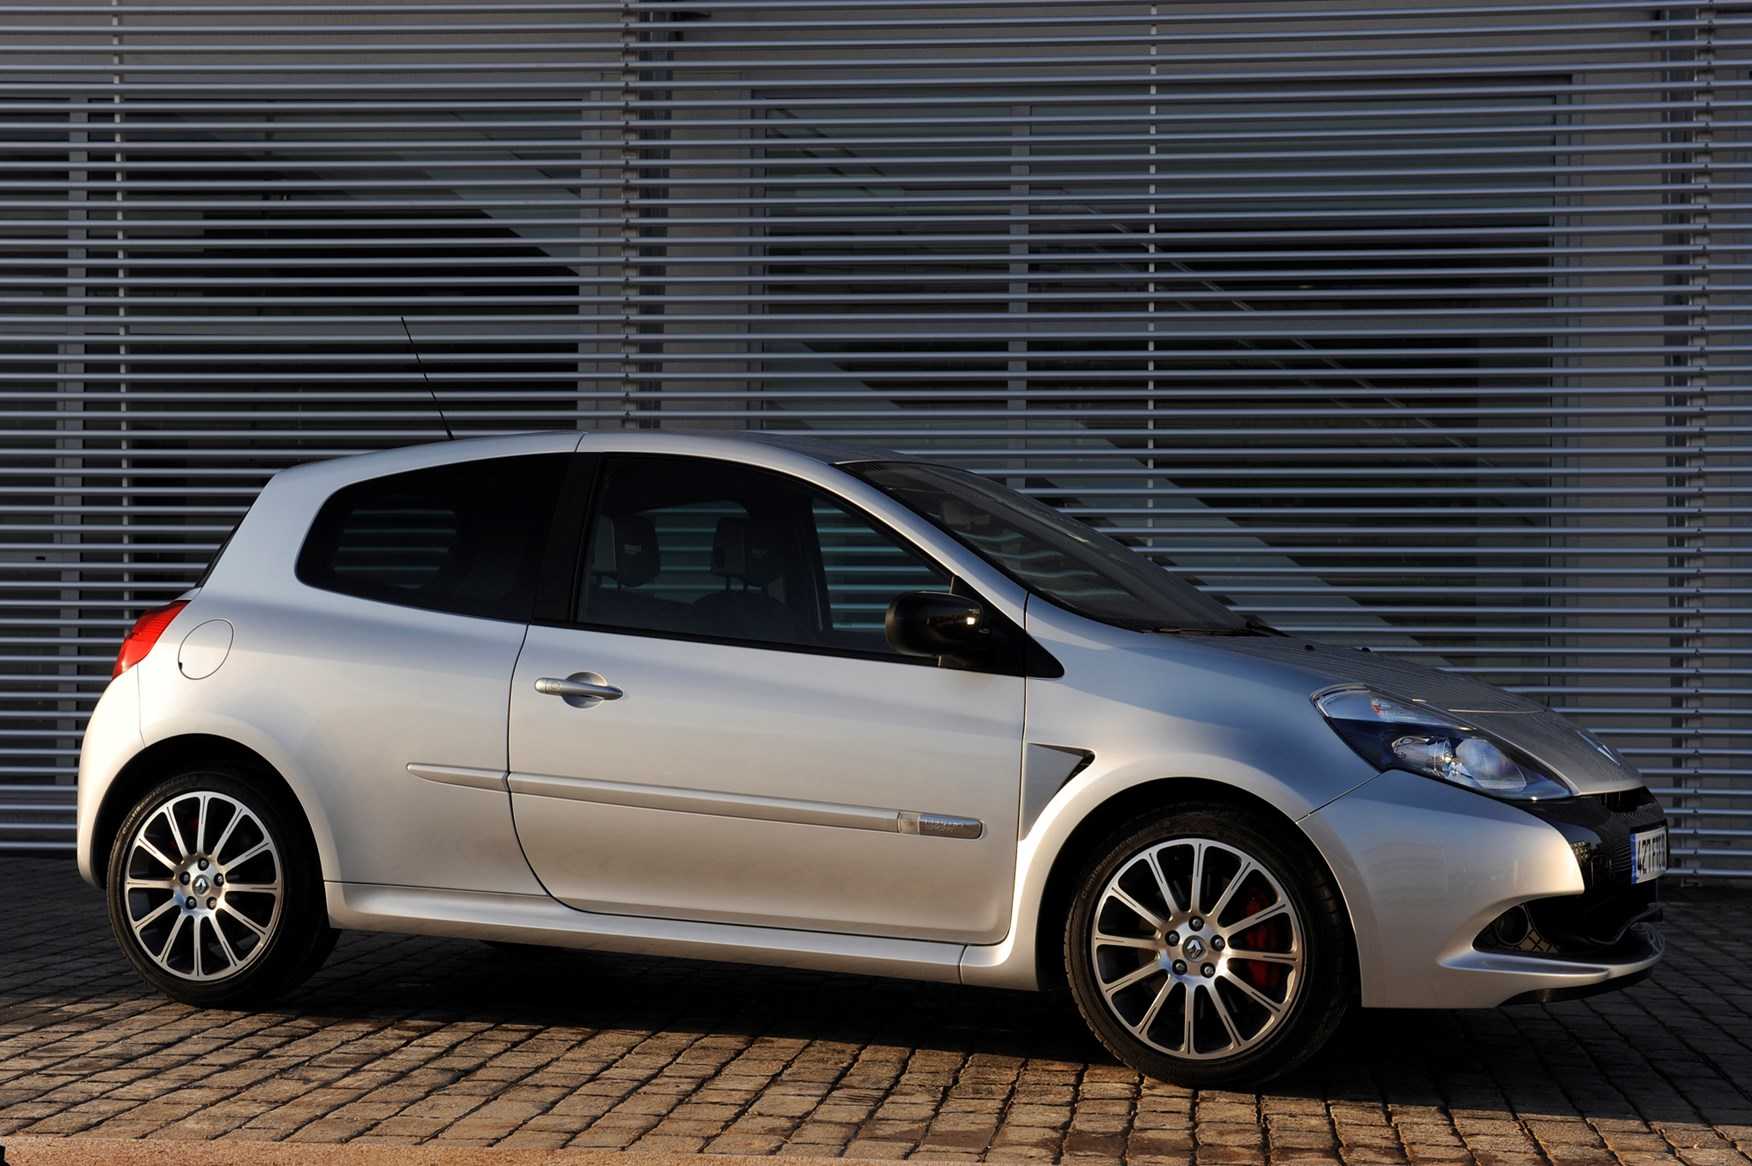 Used Renault Clio Renaultsport (2006 - 2012) Review | Parkers